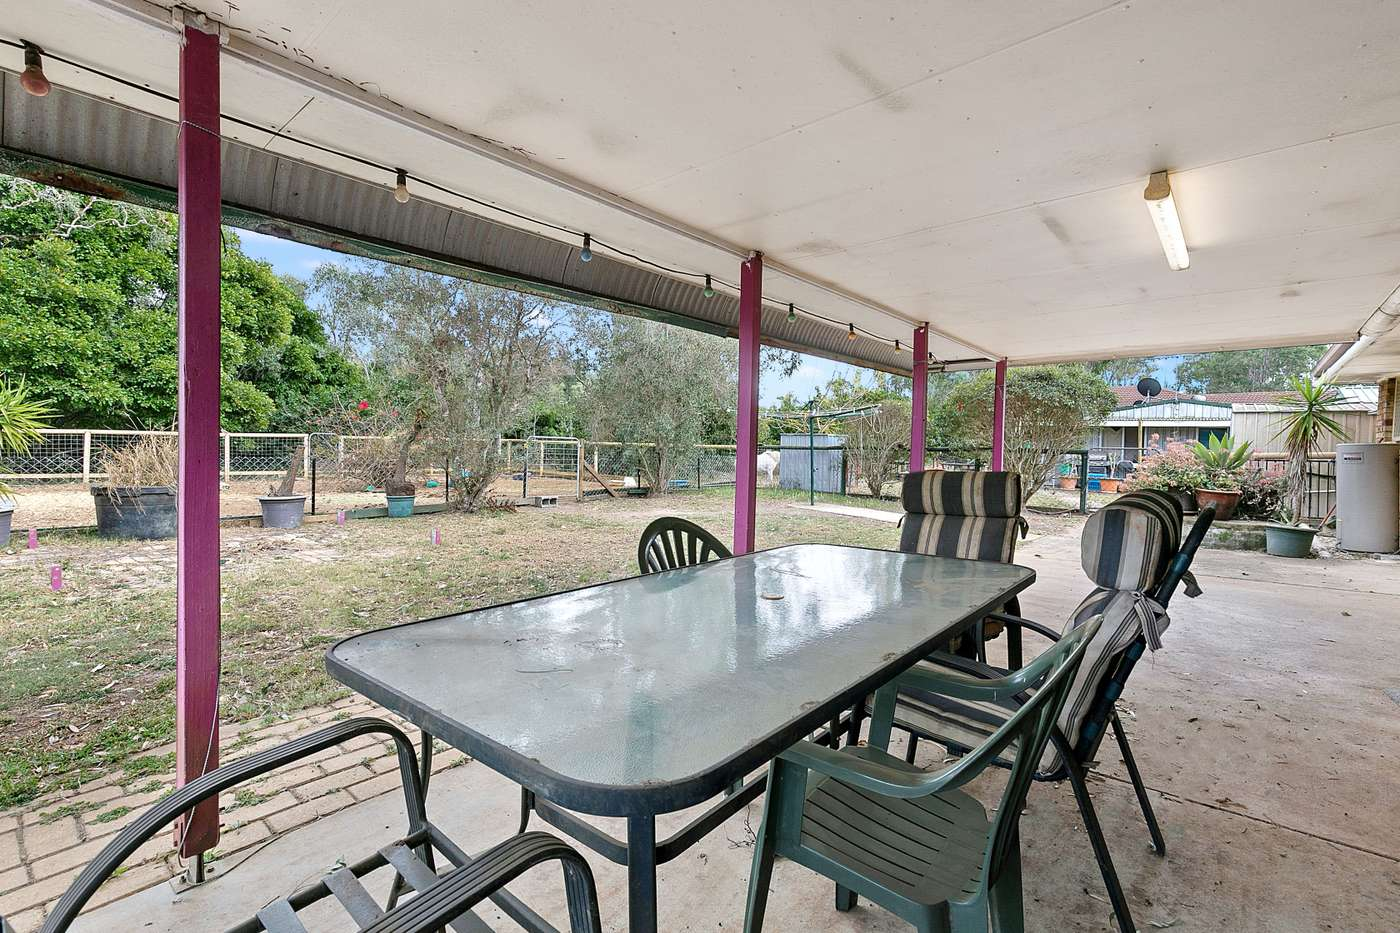 Main view of Homely house listing, 33 Peplow Street, Hemmant, QLD 4174